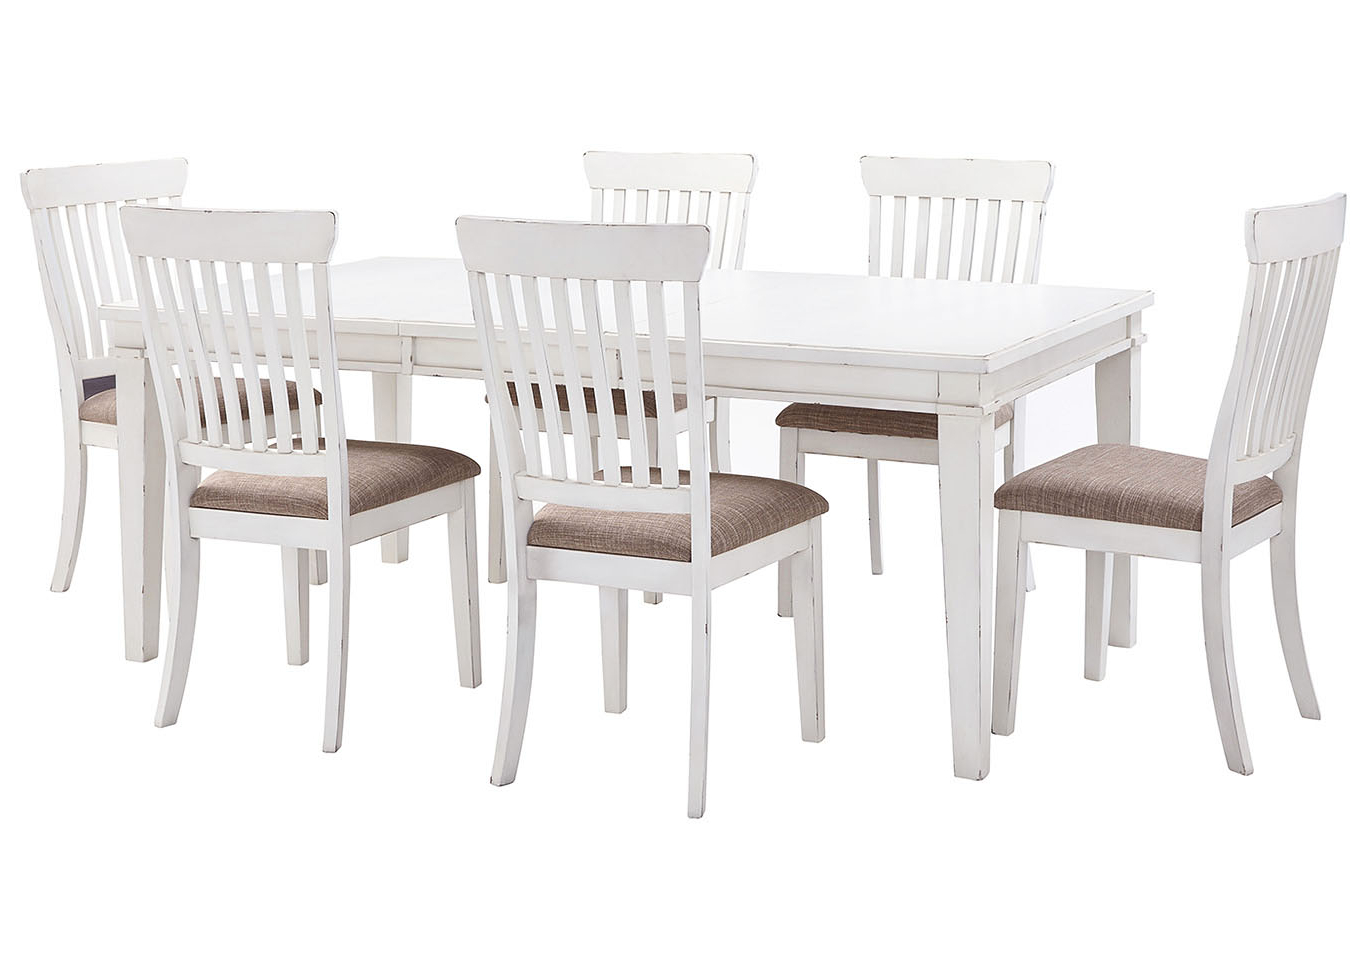 2018 Transitional 6 Seating Casual Dining Tables Intended For Curly's Furniture Danbeck White Dining Table Set W/dining (View 20 of 30)